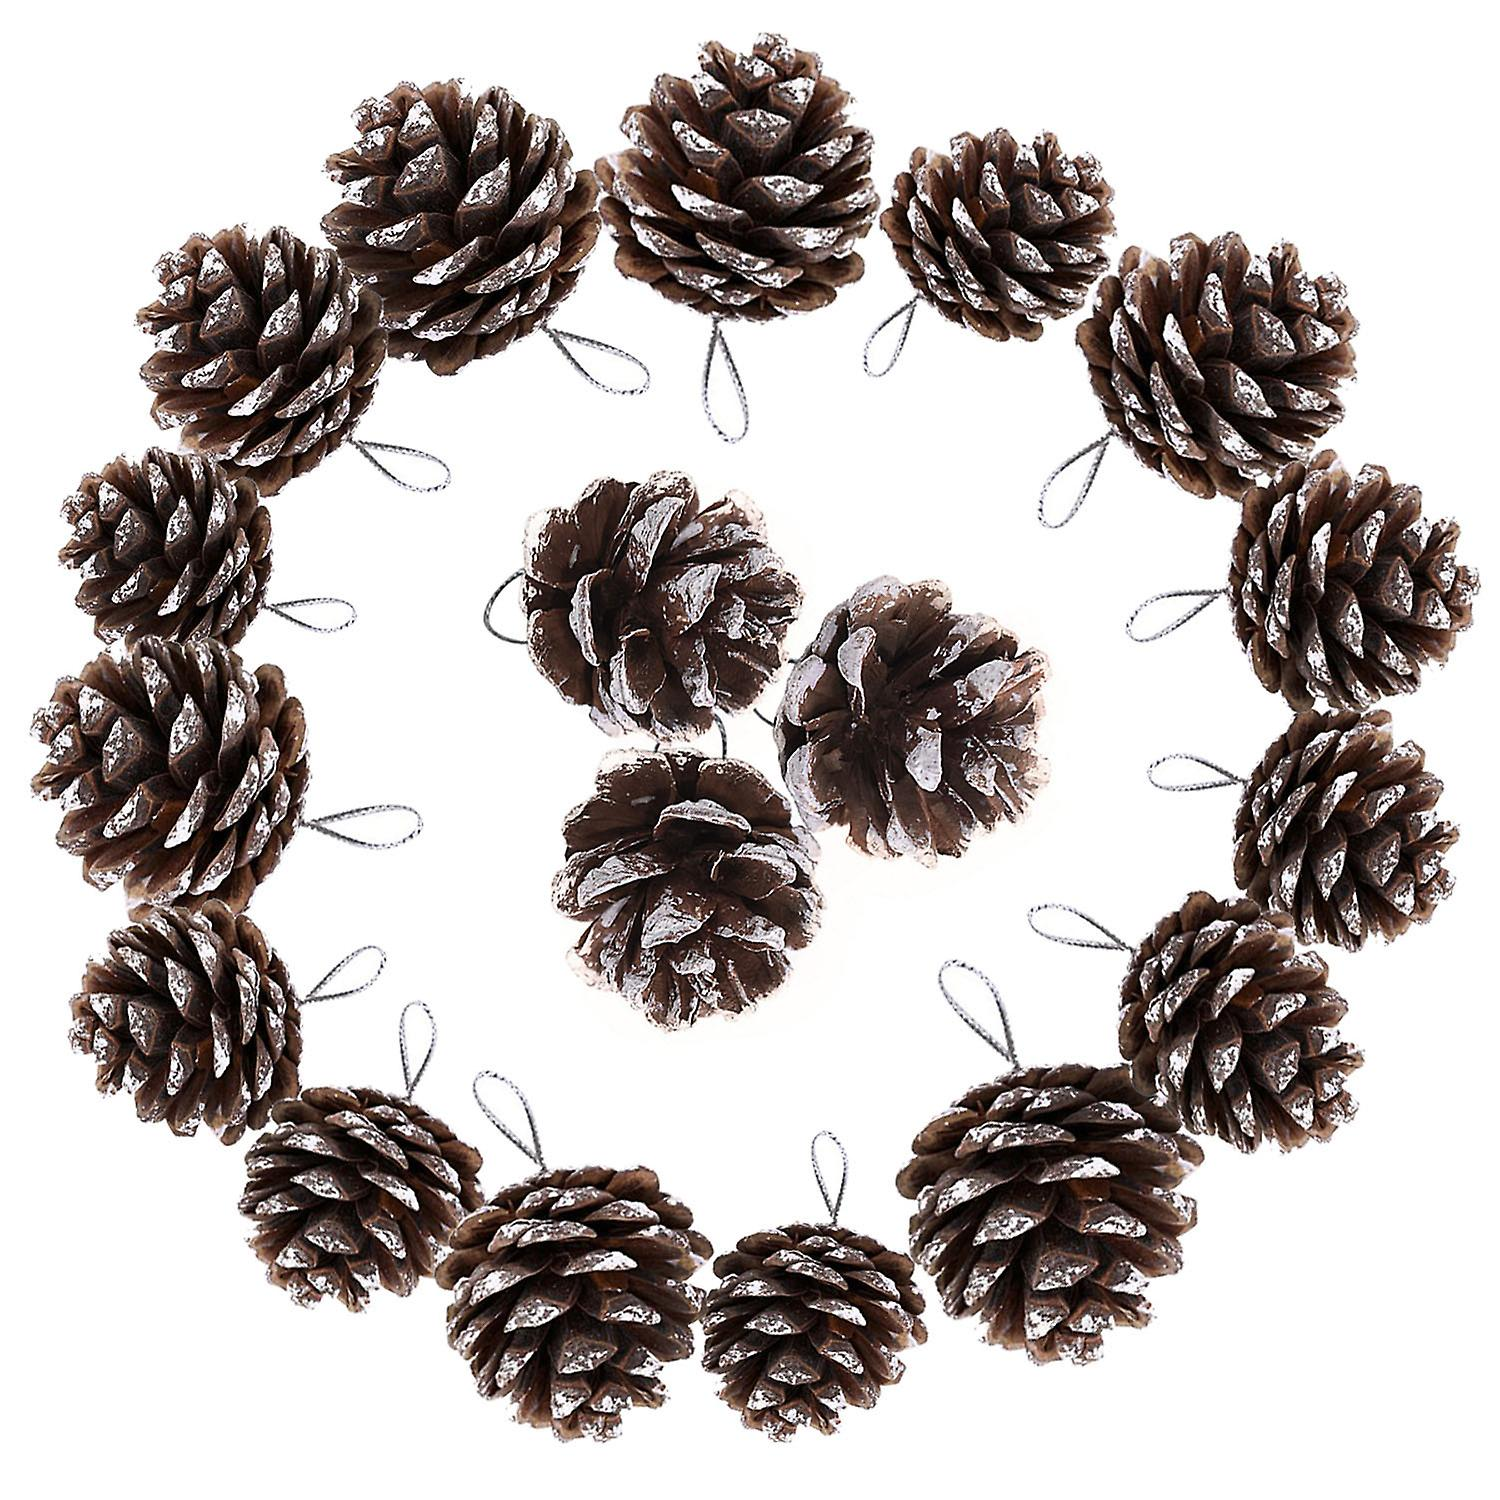 TRIXES Christmas Tree Decorations 18PC Hanging Pine Cones Christmas Baubles